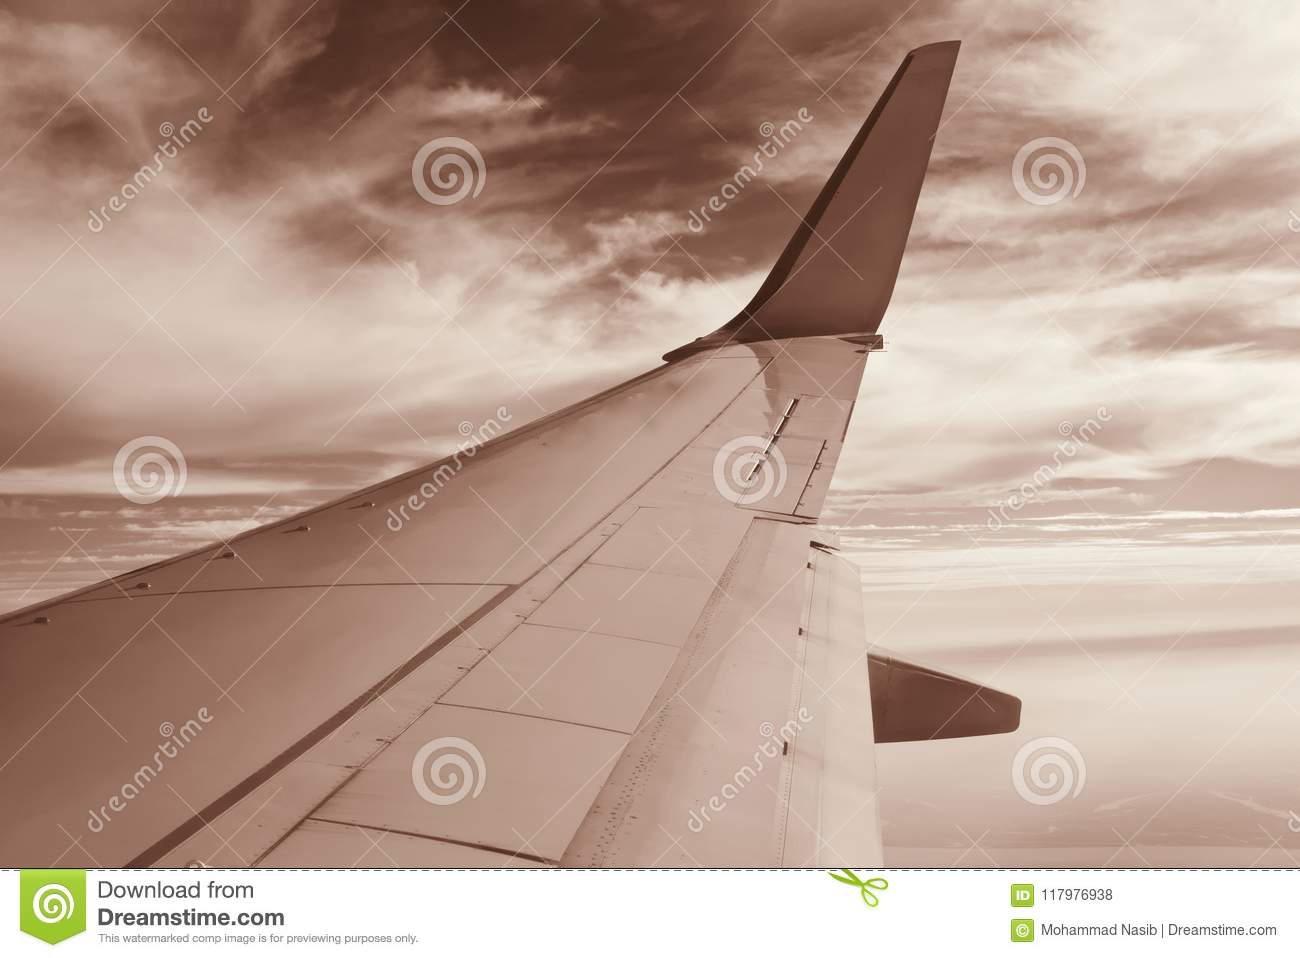 Download Large Aircraft Wings In The Sky  Unique Photo Stock Photo - Image of technology, royalty: 117976938